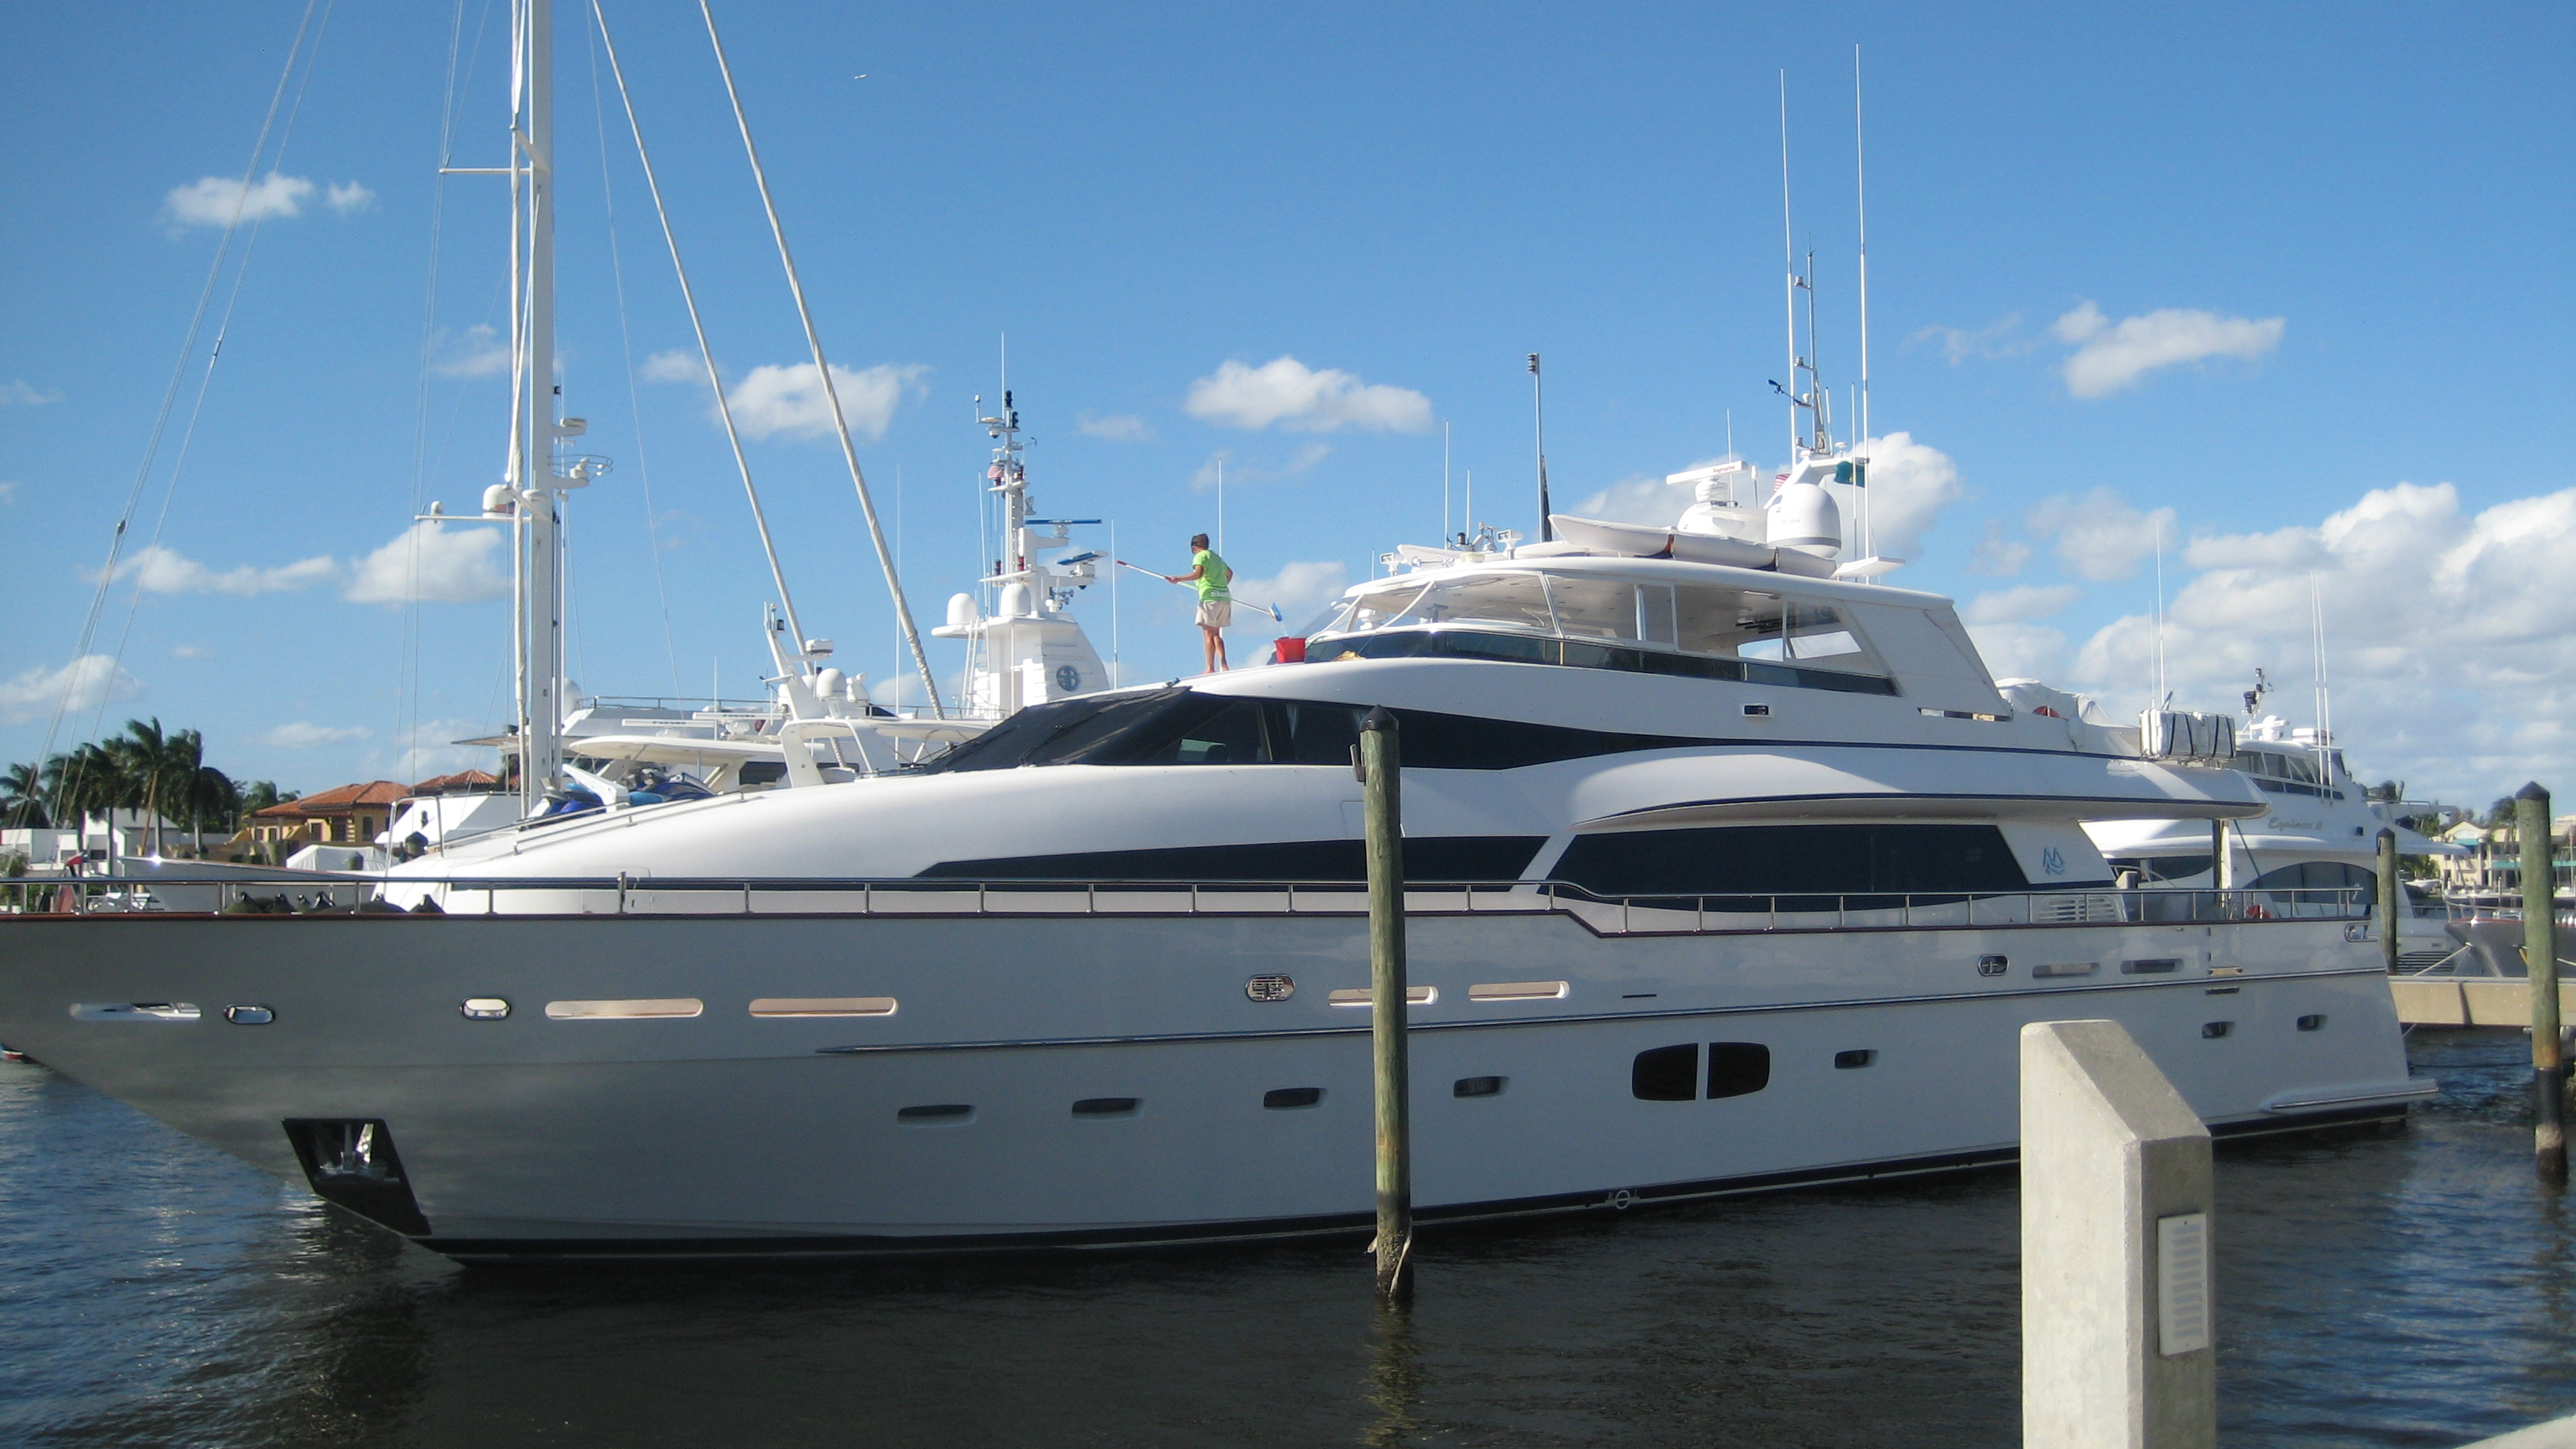 Luxus-Yacht in Fort Lauderdale